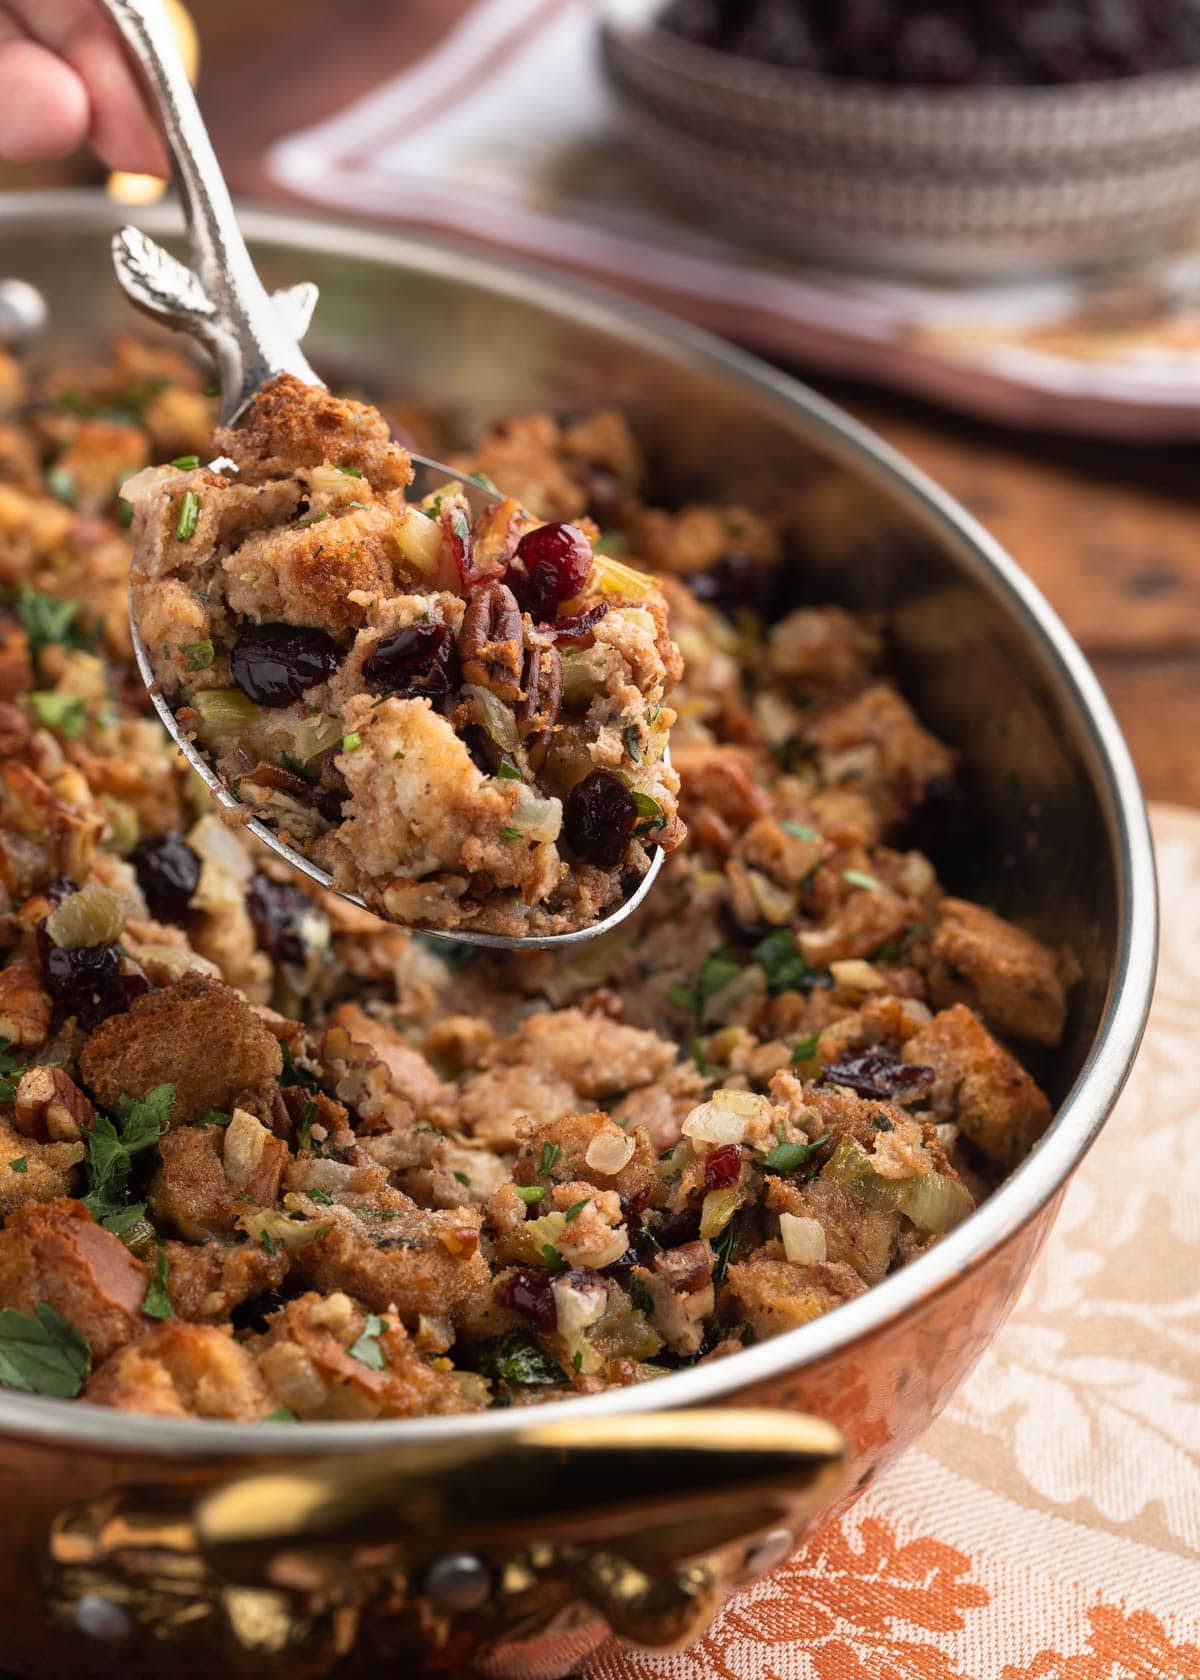 silver serving spoon holding a scoop of cranberry pecan stuffing over the baking dish